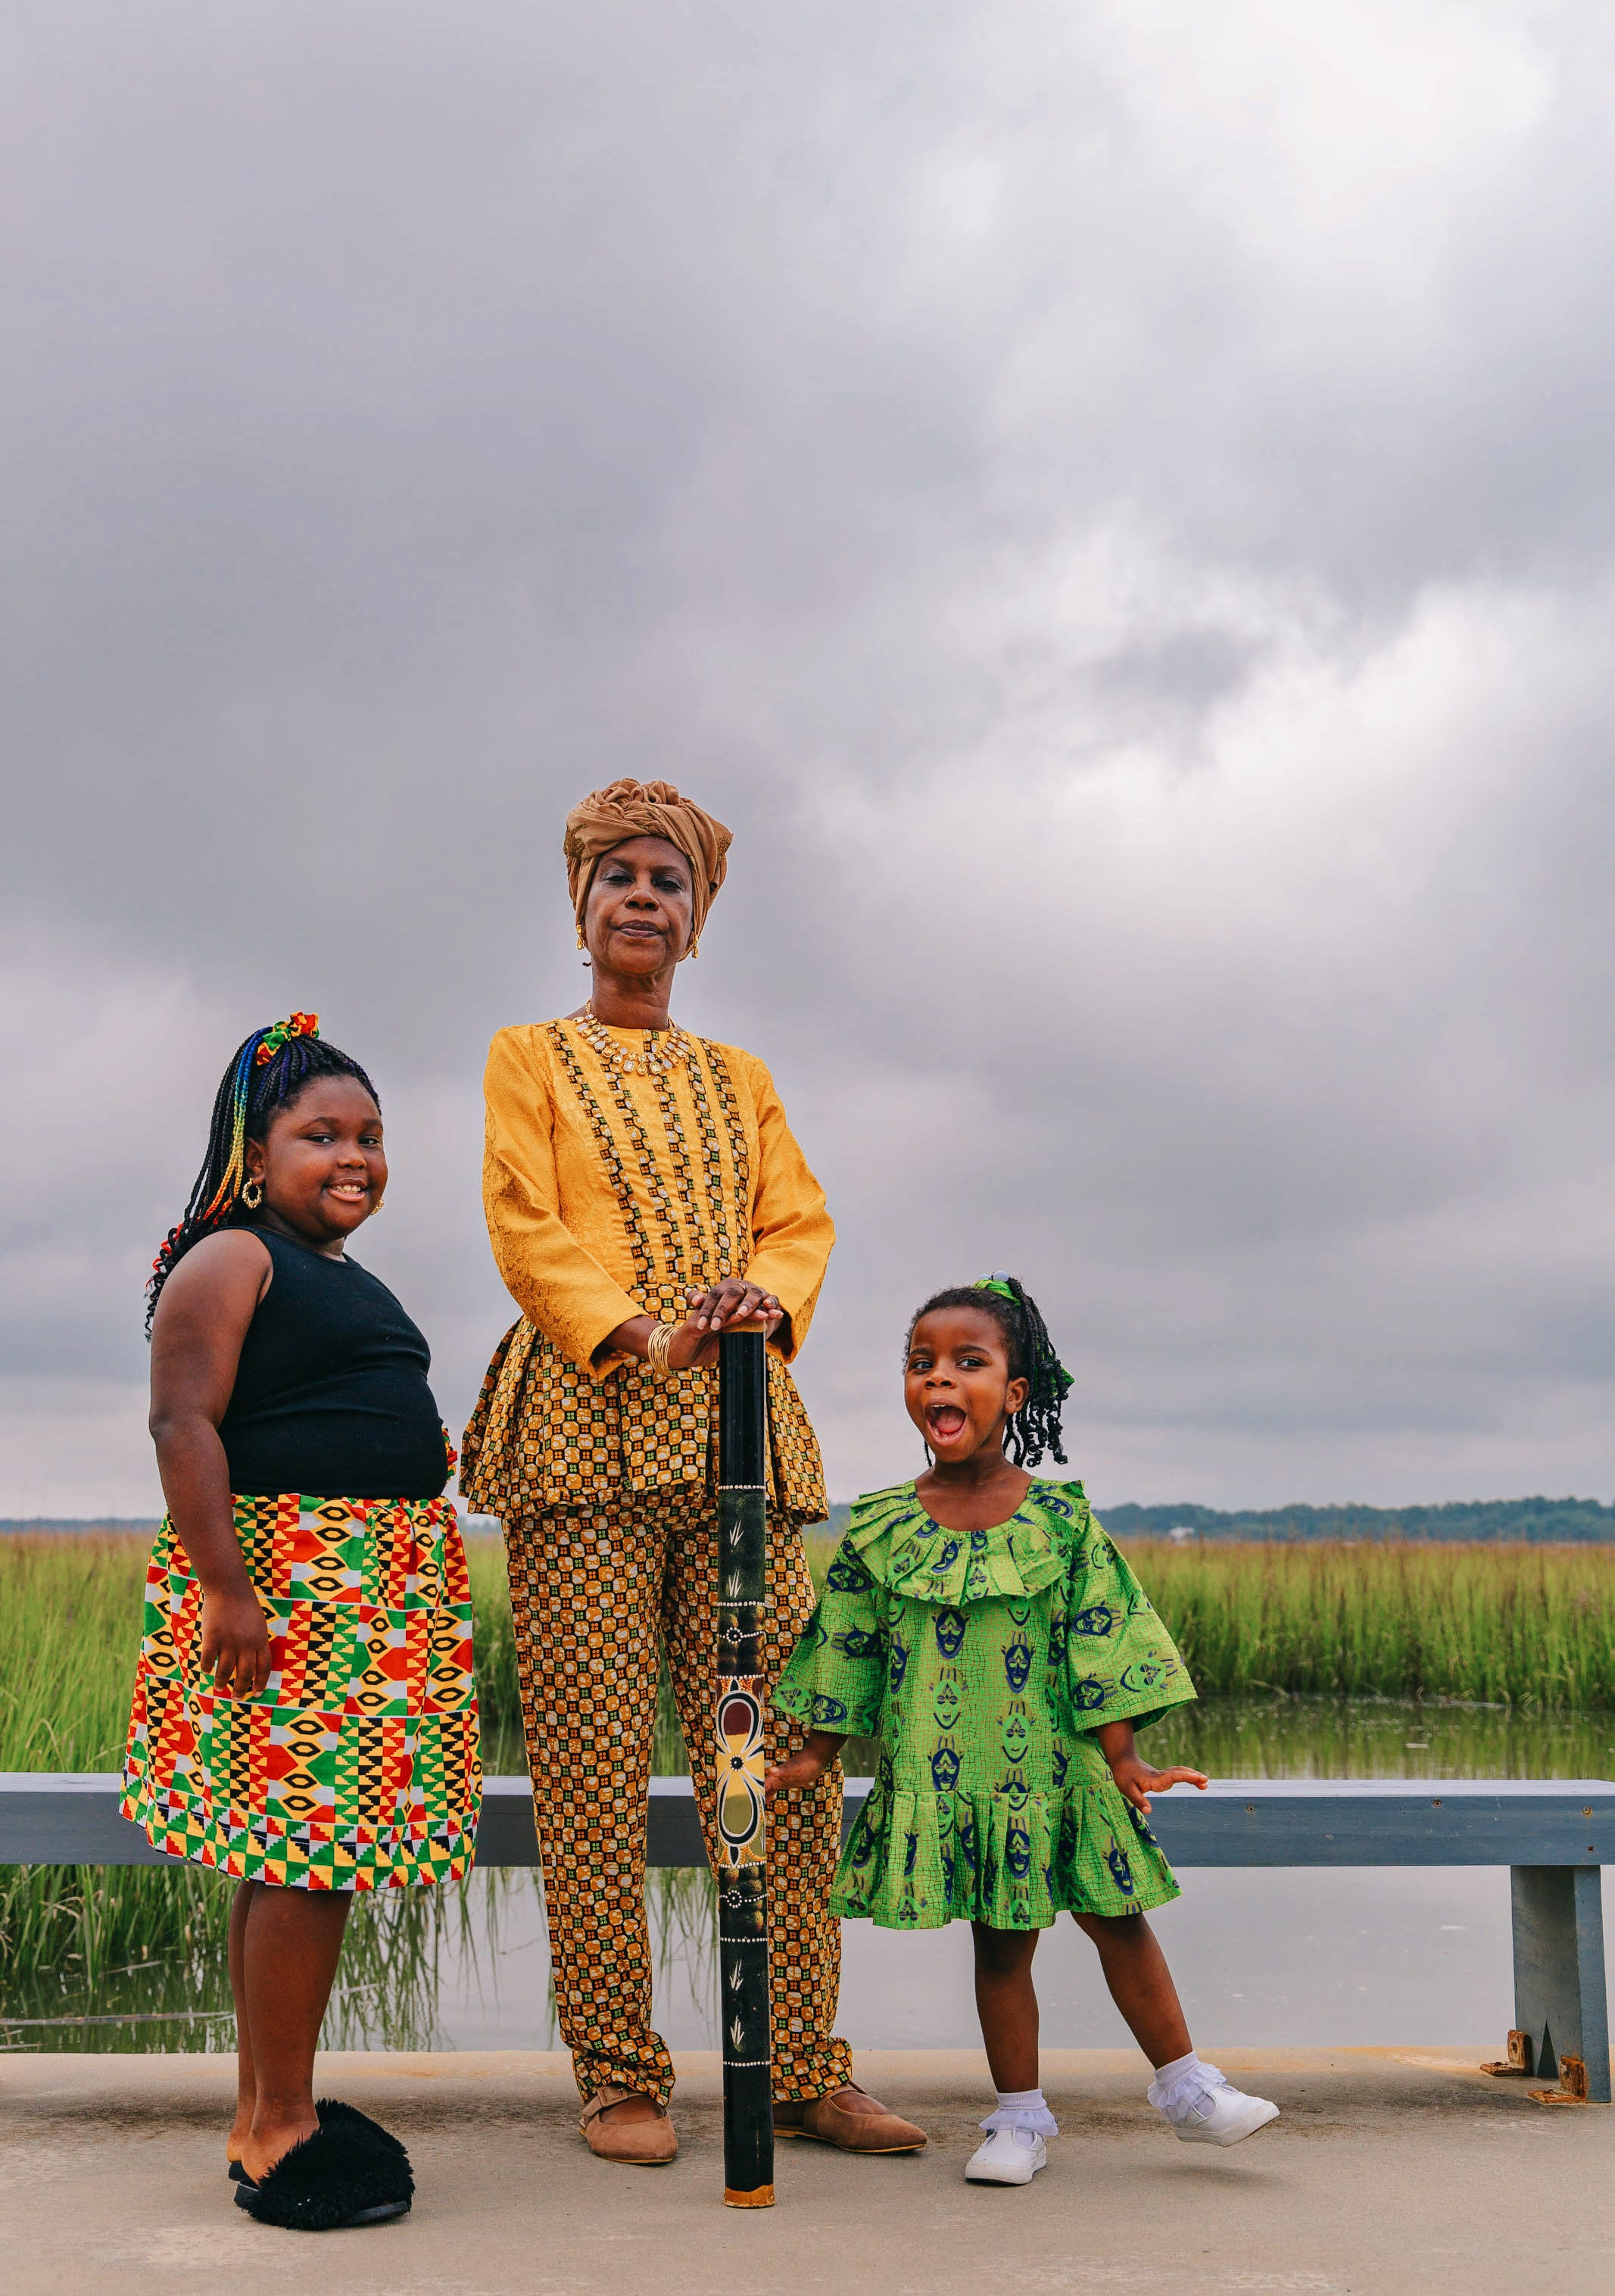 """Rosalyn Rouse, Lemeirah Rouse and Noelle Mugin at Pin Point Heritage Museum in Savannah. """"I remind my grandkids and my niece every day and I never want them to forget what it took for them to be here,"""" Rouse said."""